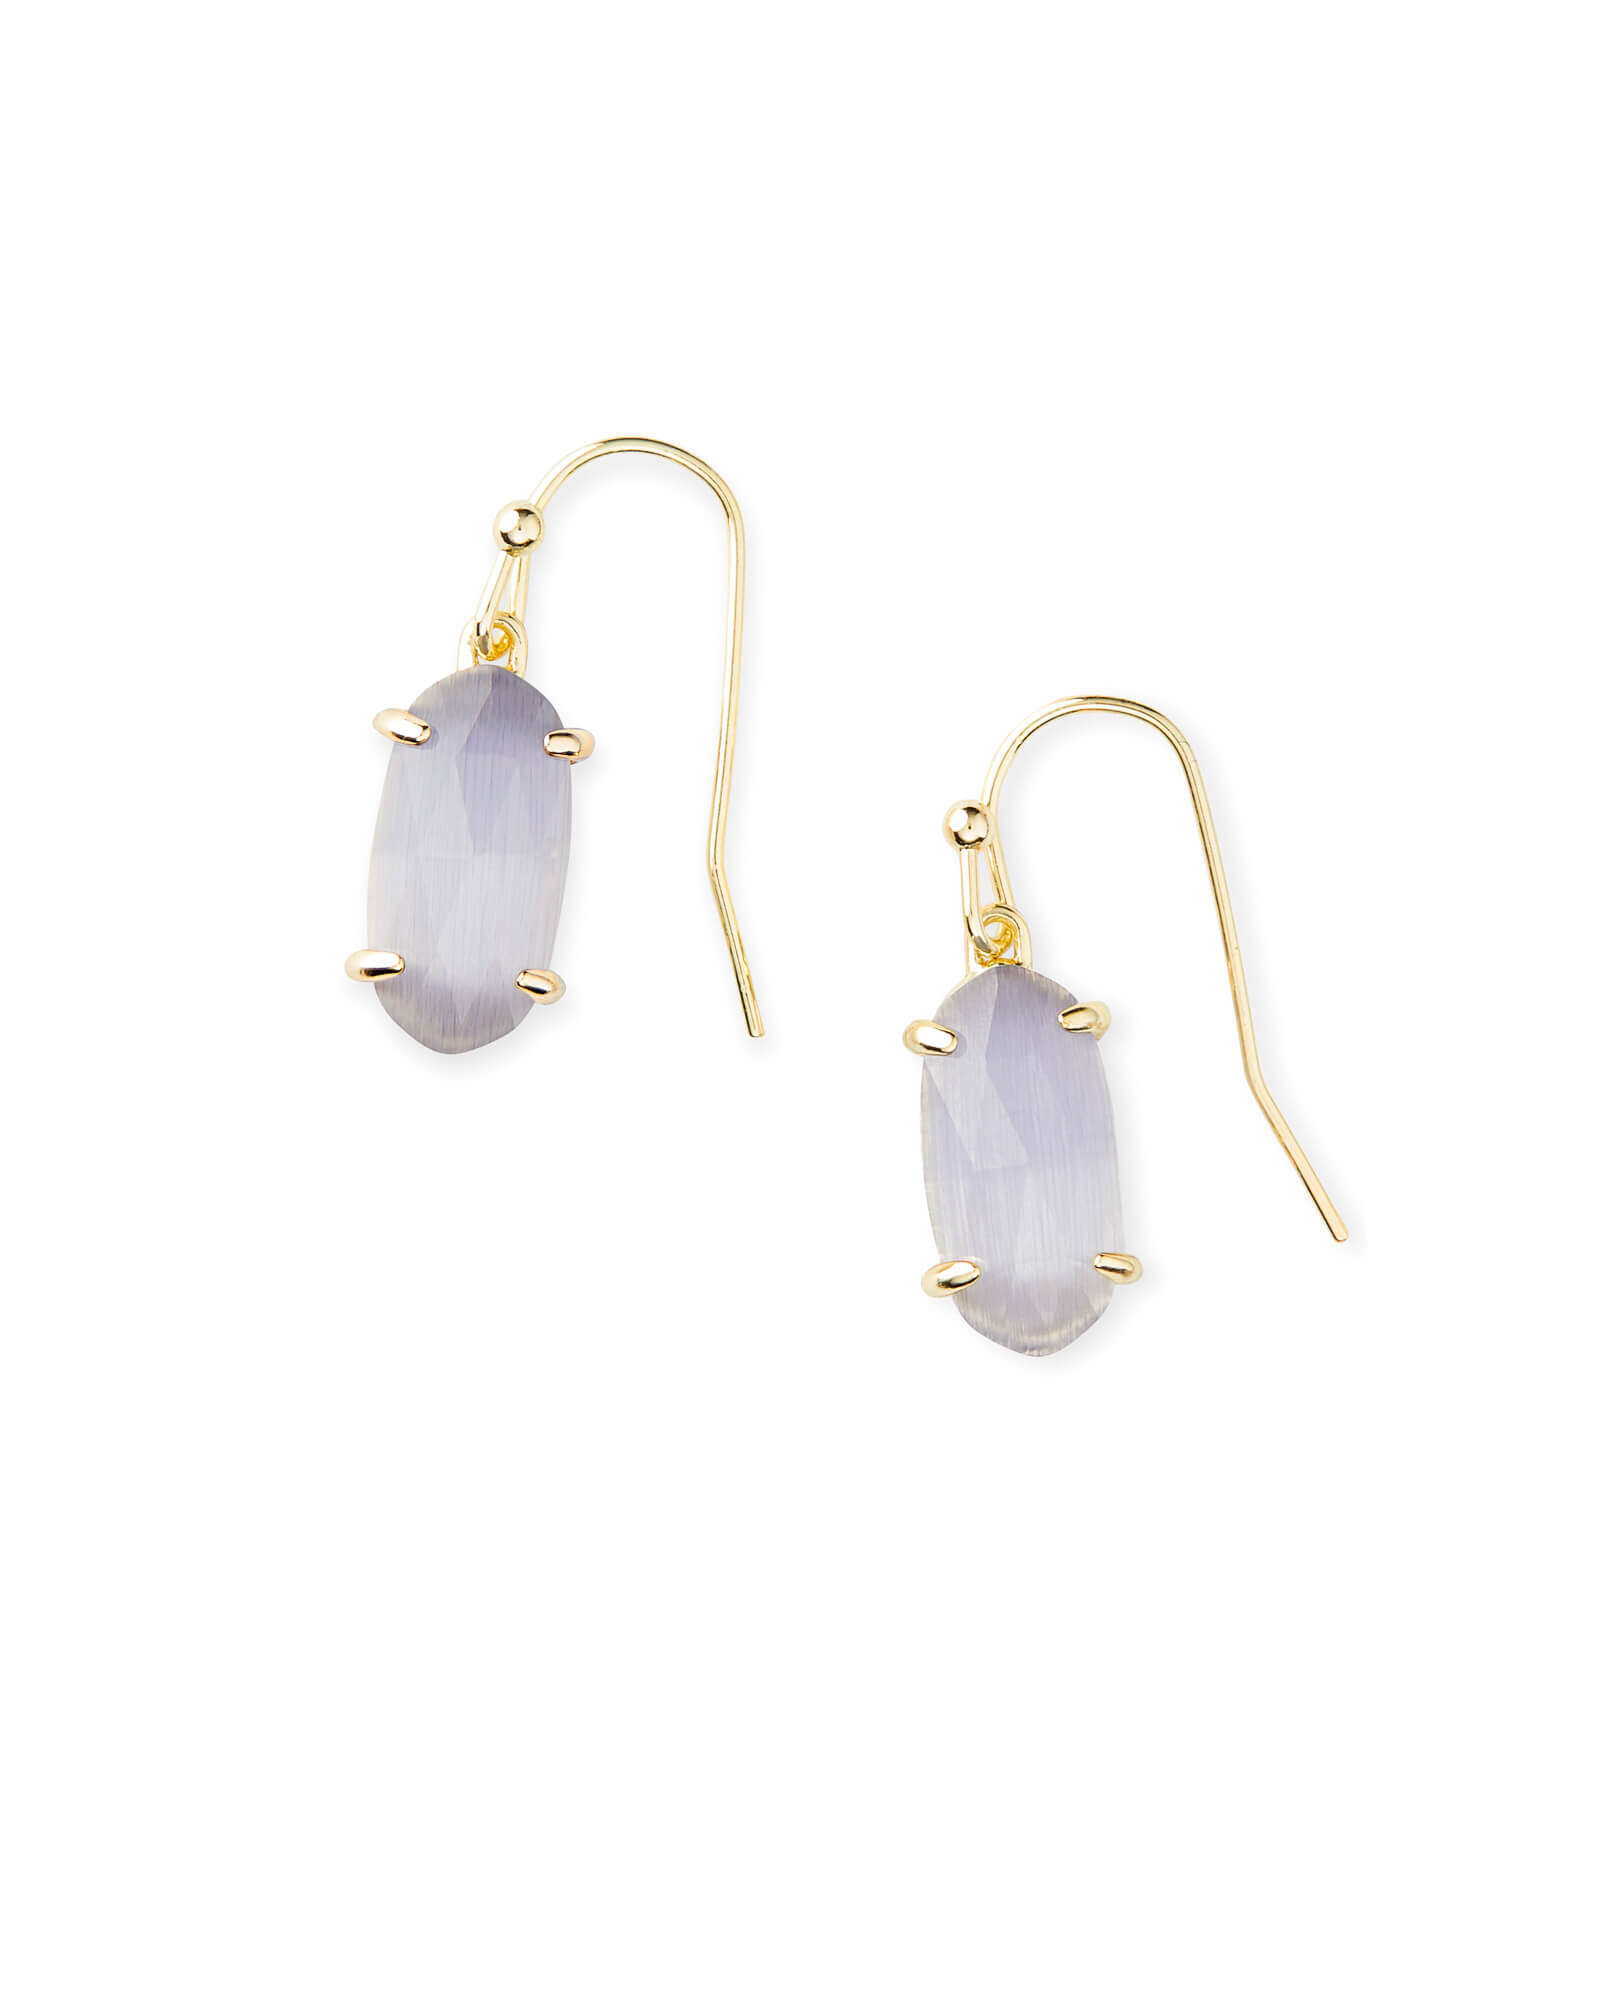 Lemmi Gold Drop Earrings in Slate Cat's Eye